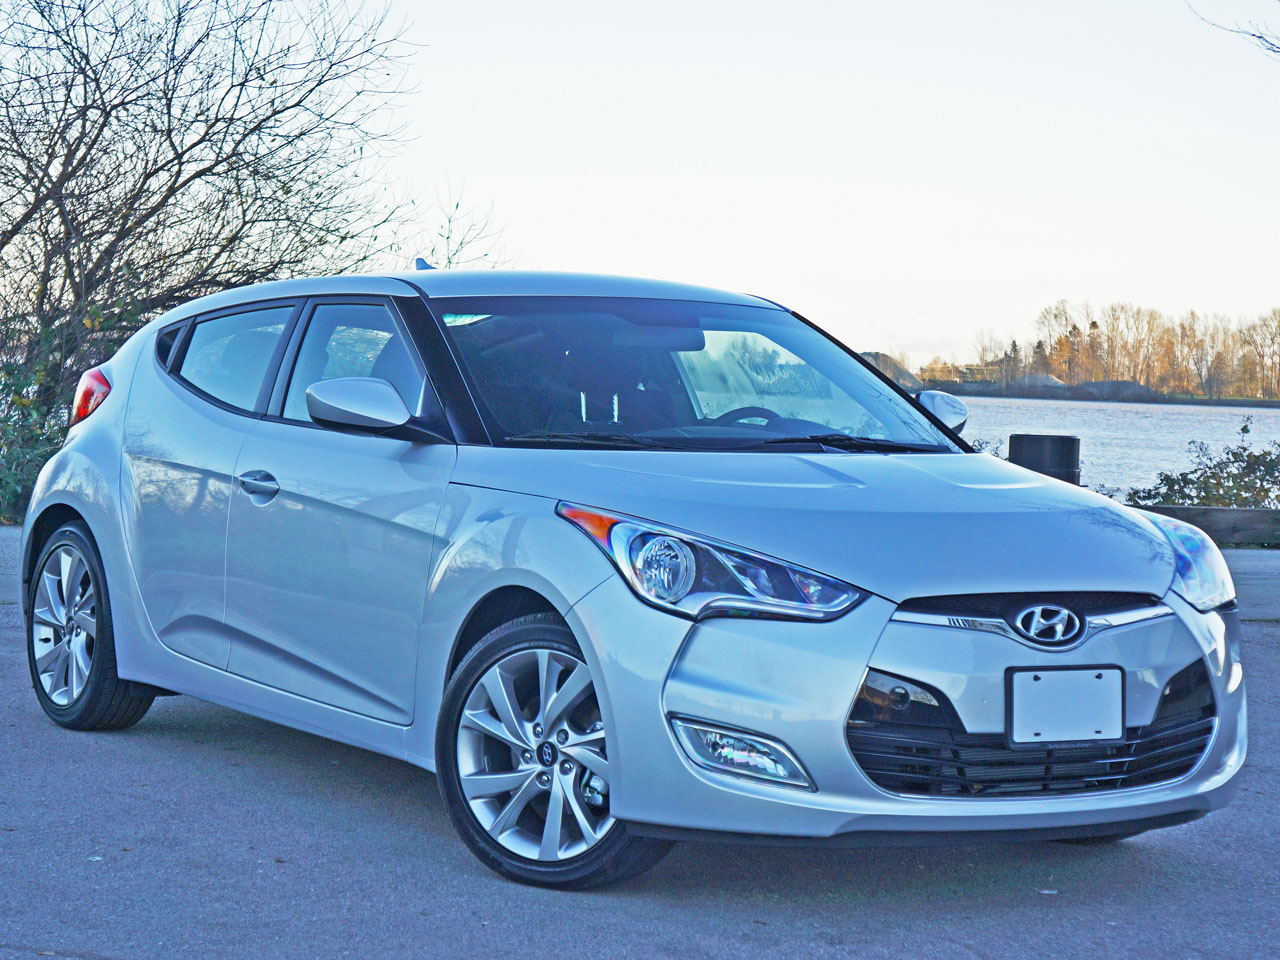 2016 hyundai veloster se dct road test review carcostcanada. Black Bedroom Furniture Sets. Home Design Ideas